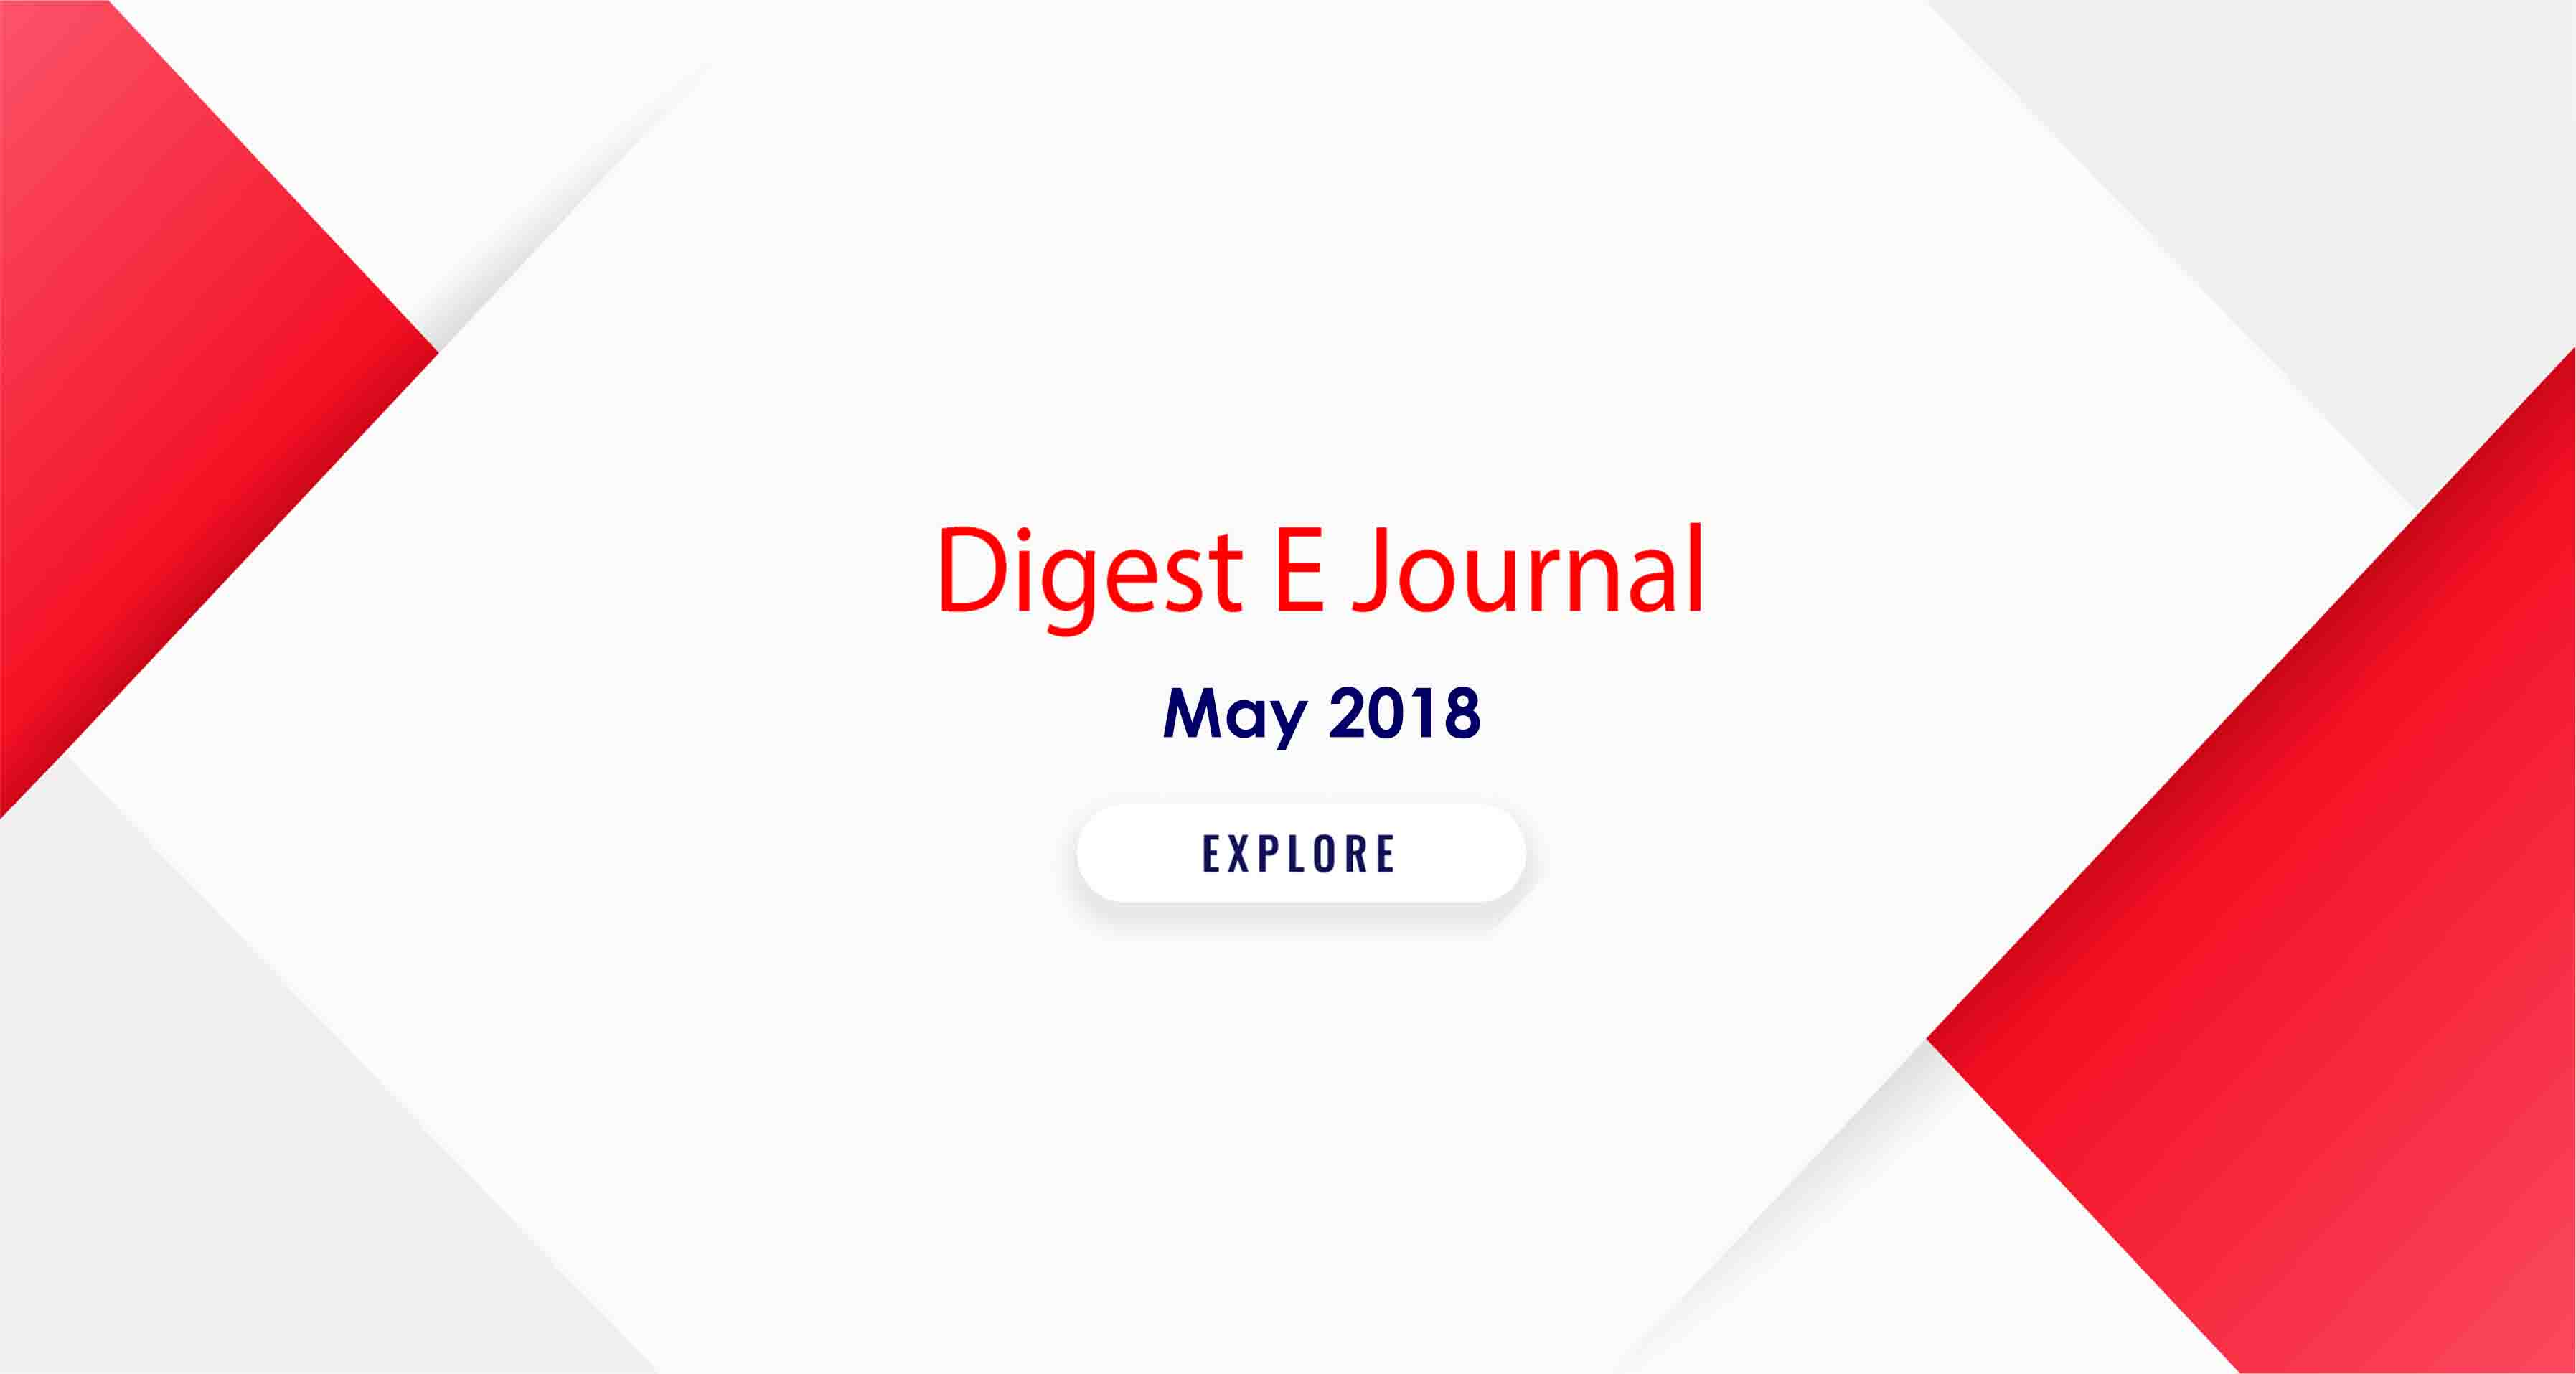 SBS DIGEST E JOURNAL MAY 2018